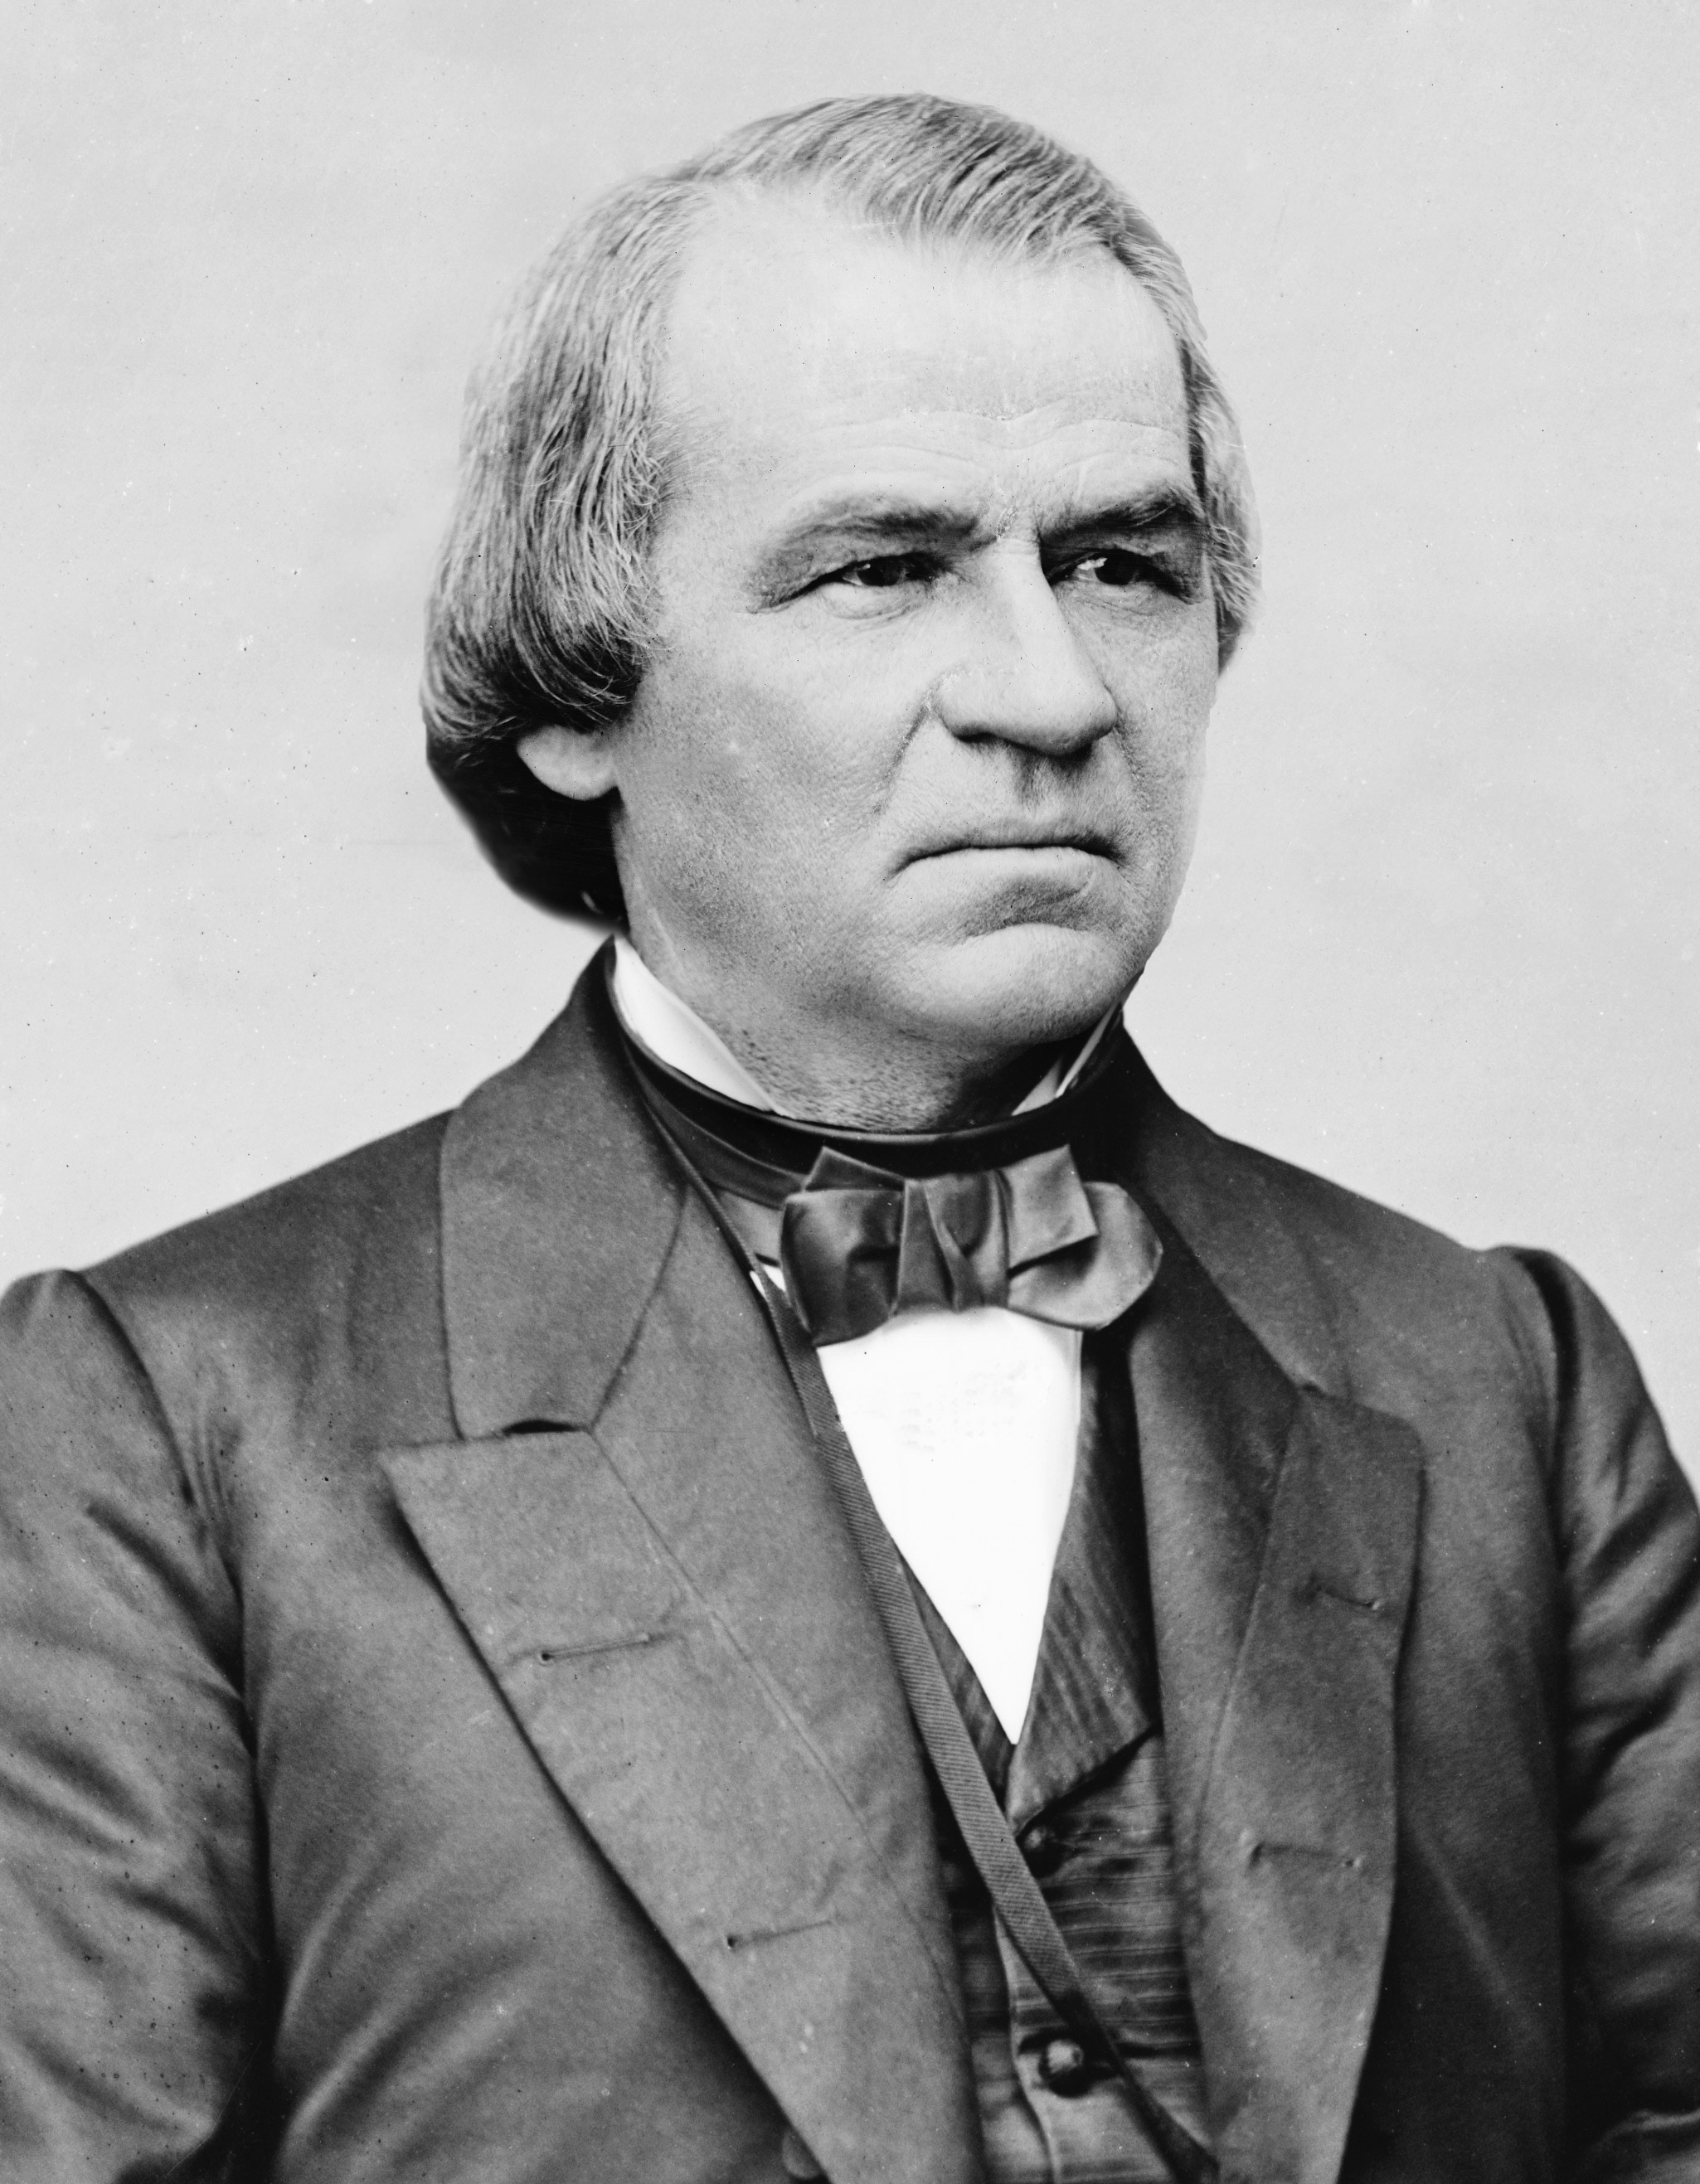 Depiction of Andrew Johnson